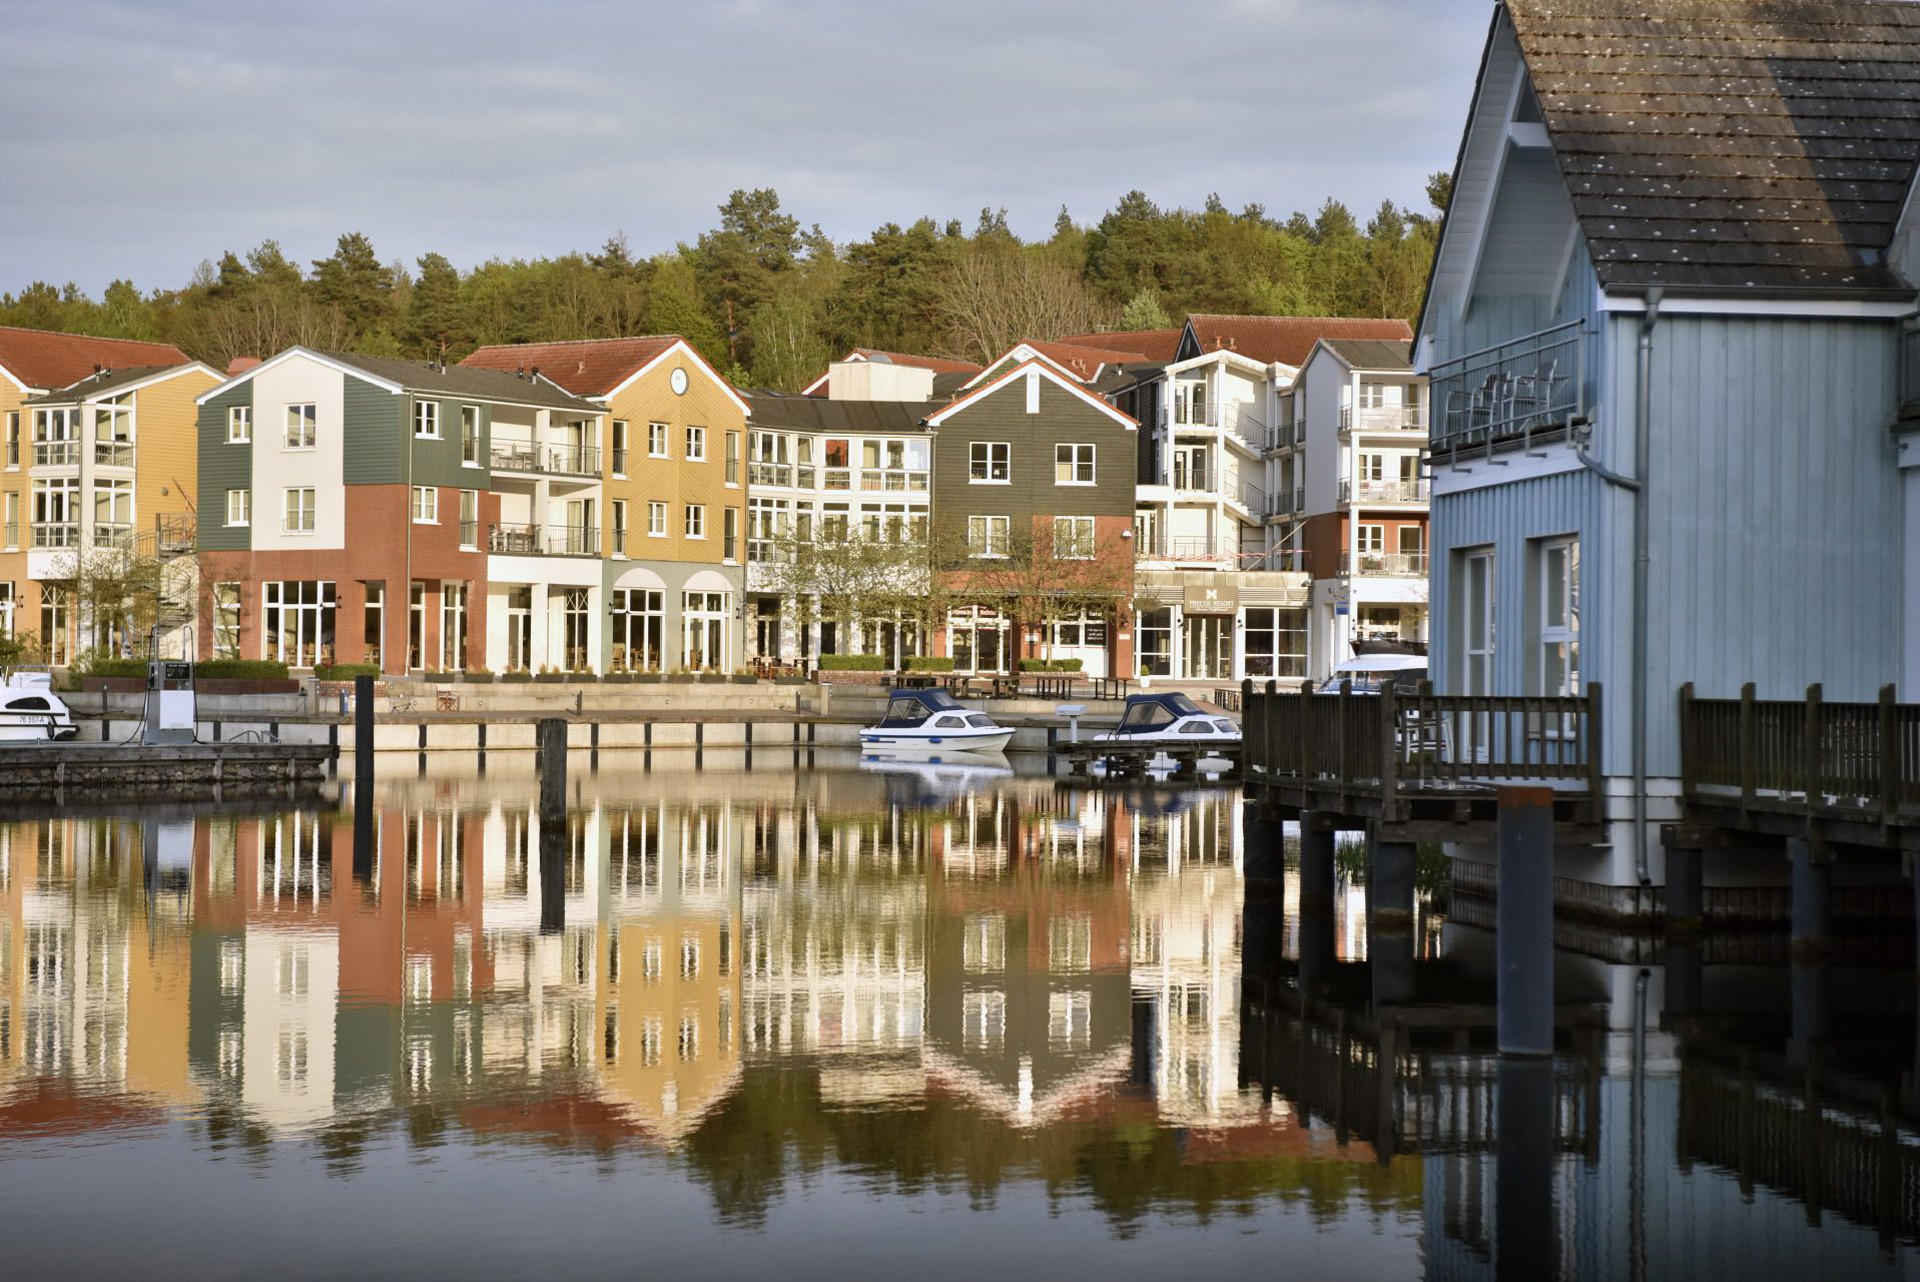 picturesque town near Precise Resort Marina Wolfsbruch